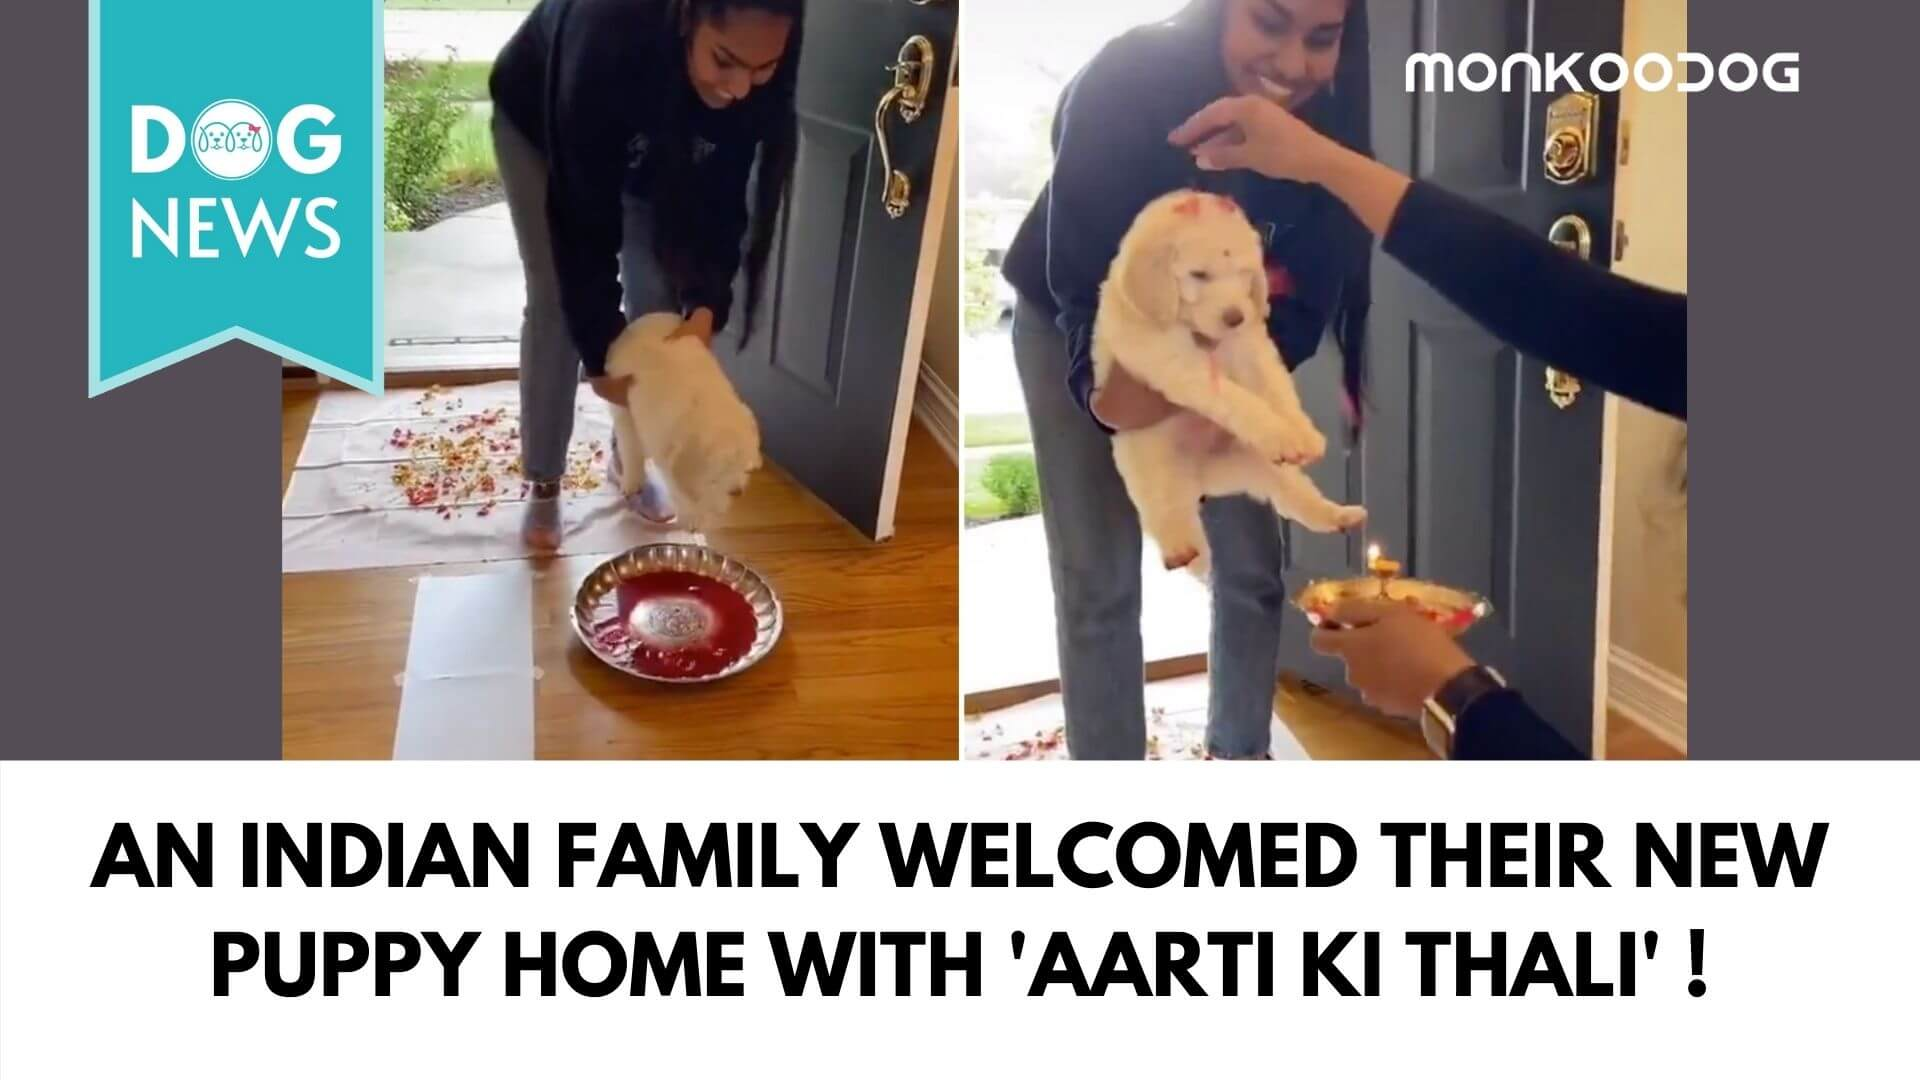 An Indian family welcoming a new puppy home in desi style is the most adorable style.